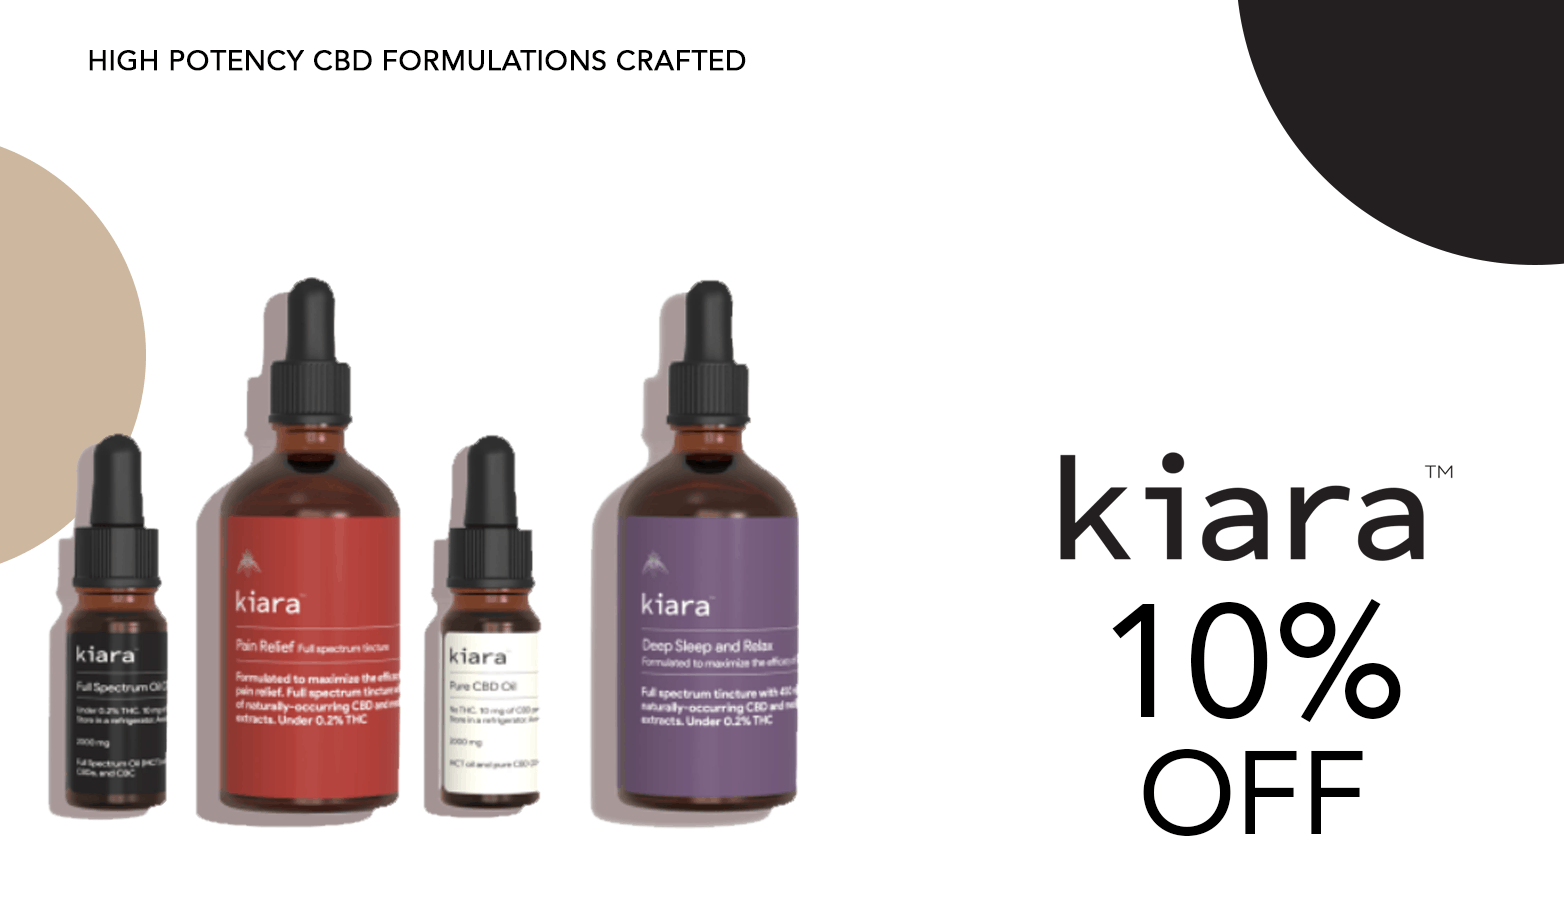 Kiara Naturals CBD Coupon Code Offer Website